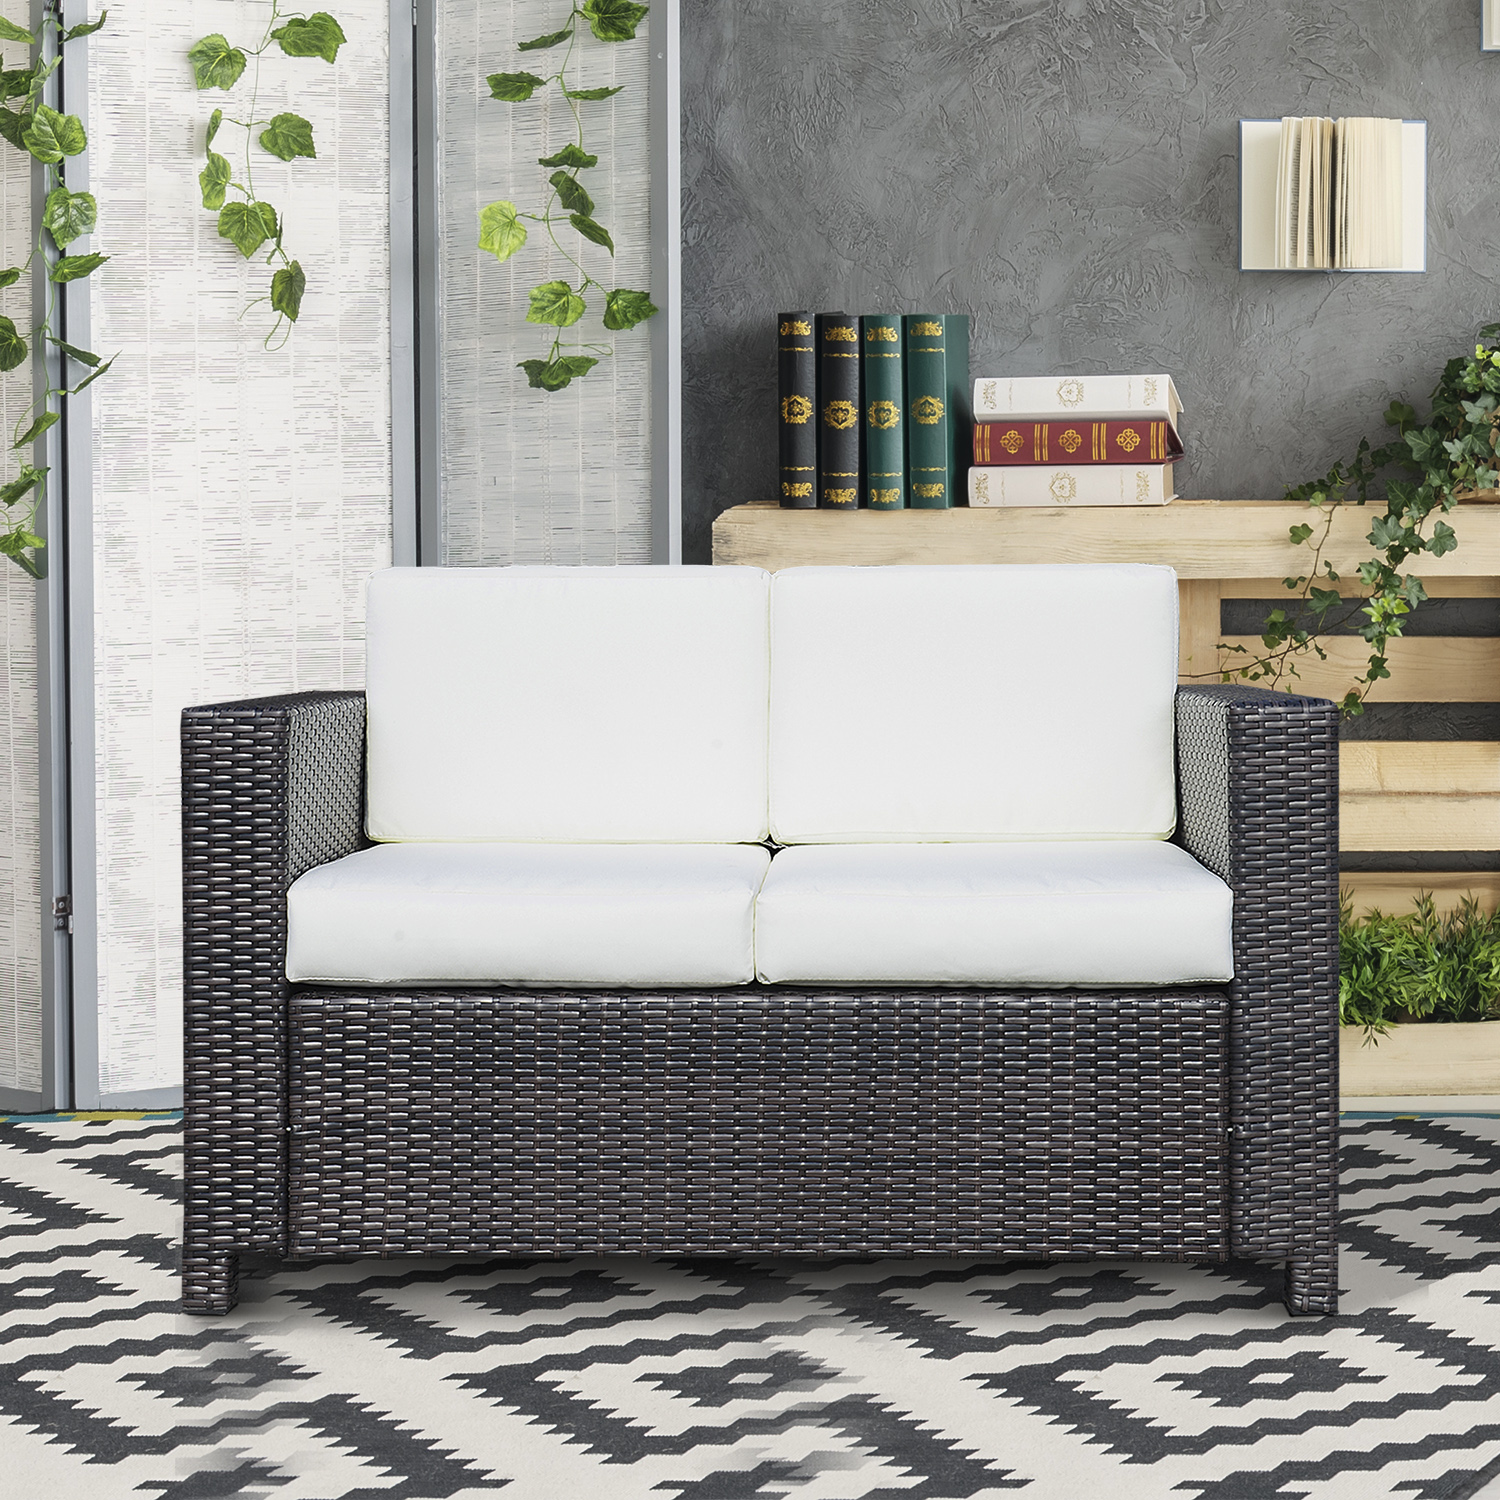 Image of CAD $299.99 Outsunny Deluxe 2 Seat Rattan Wicker Sofa Garden Cushioned Loveseat Outdoor Patio Furniture Brown / All Canada 25093585289